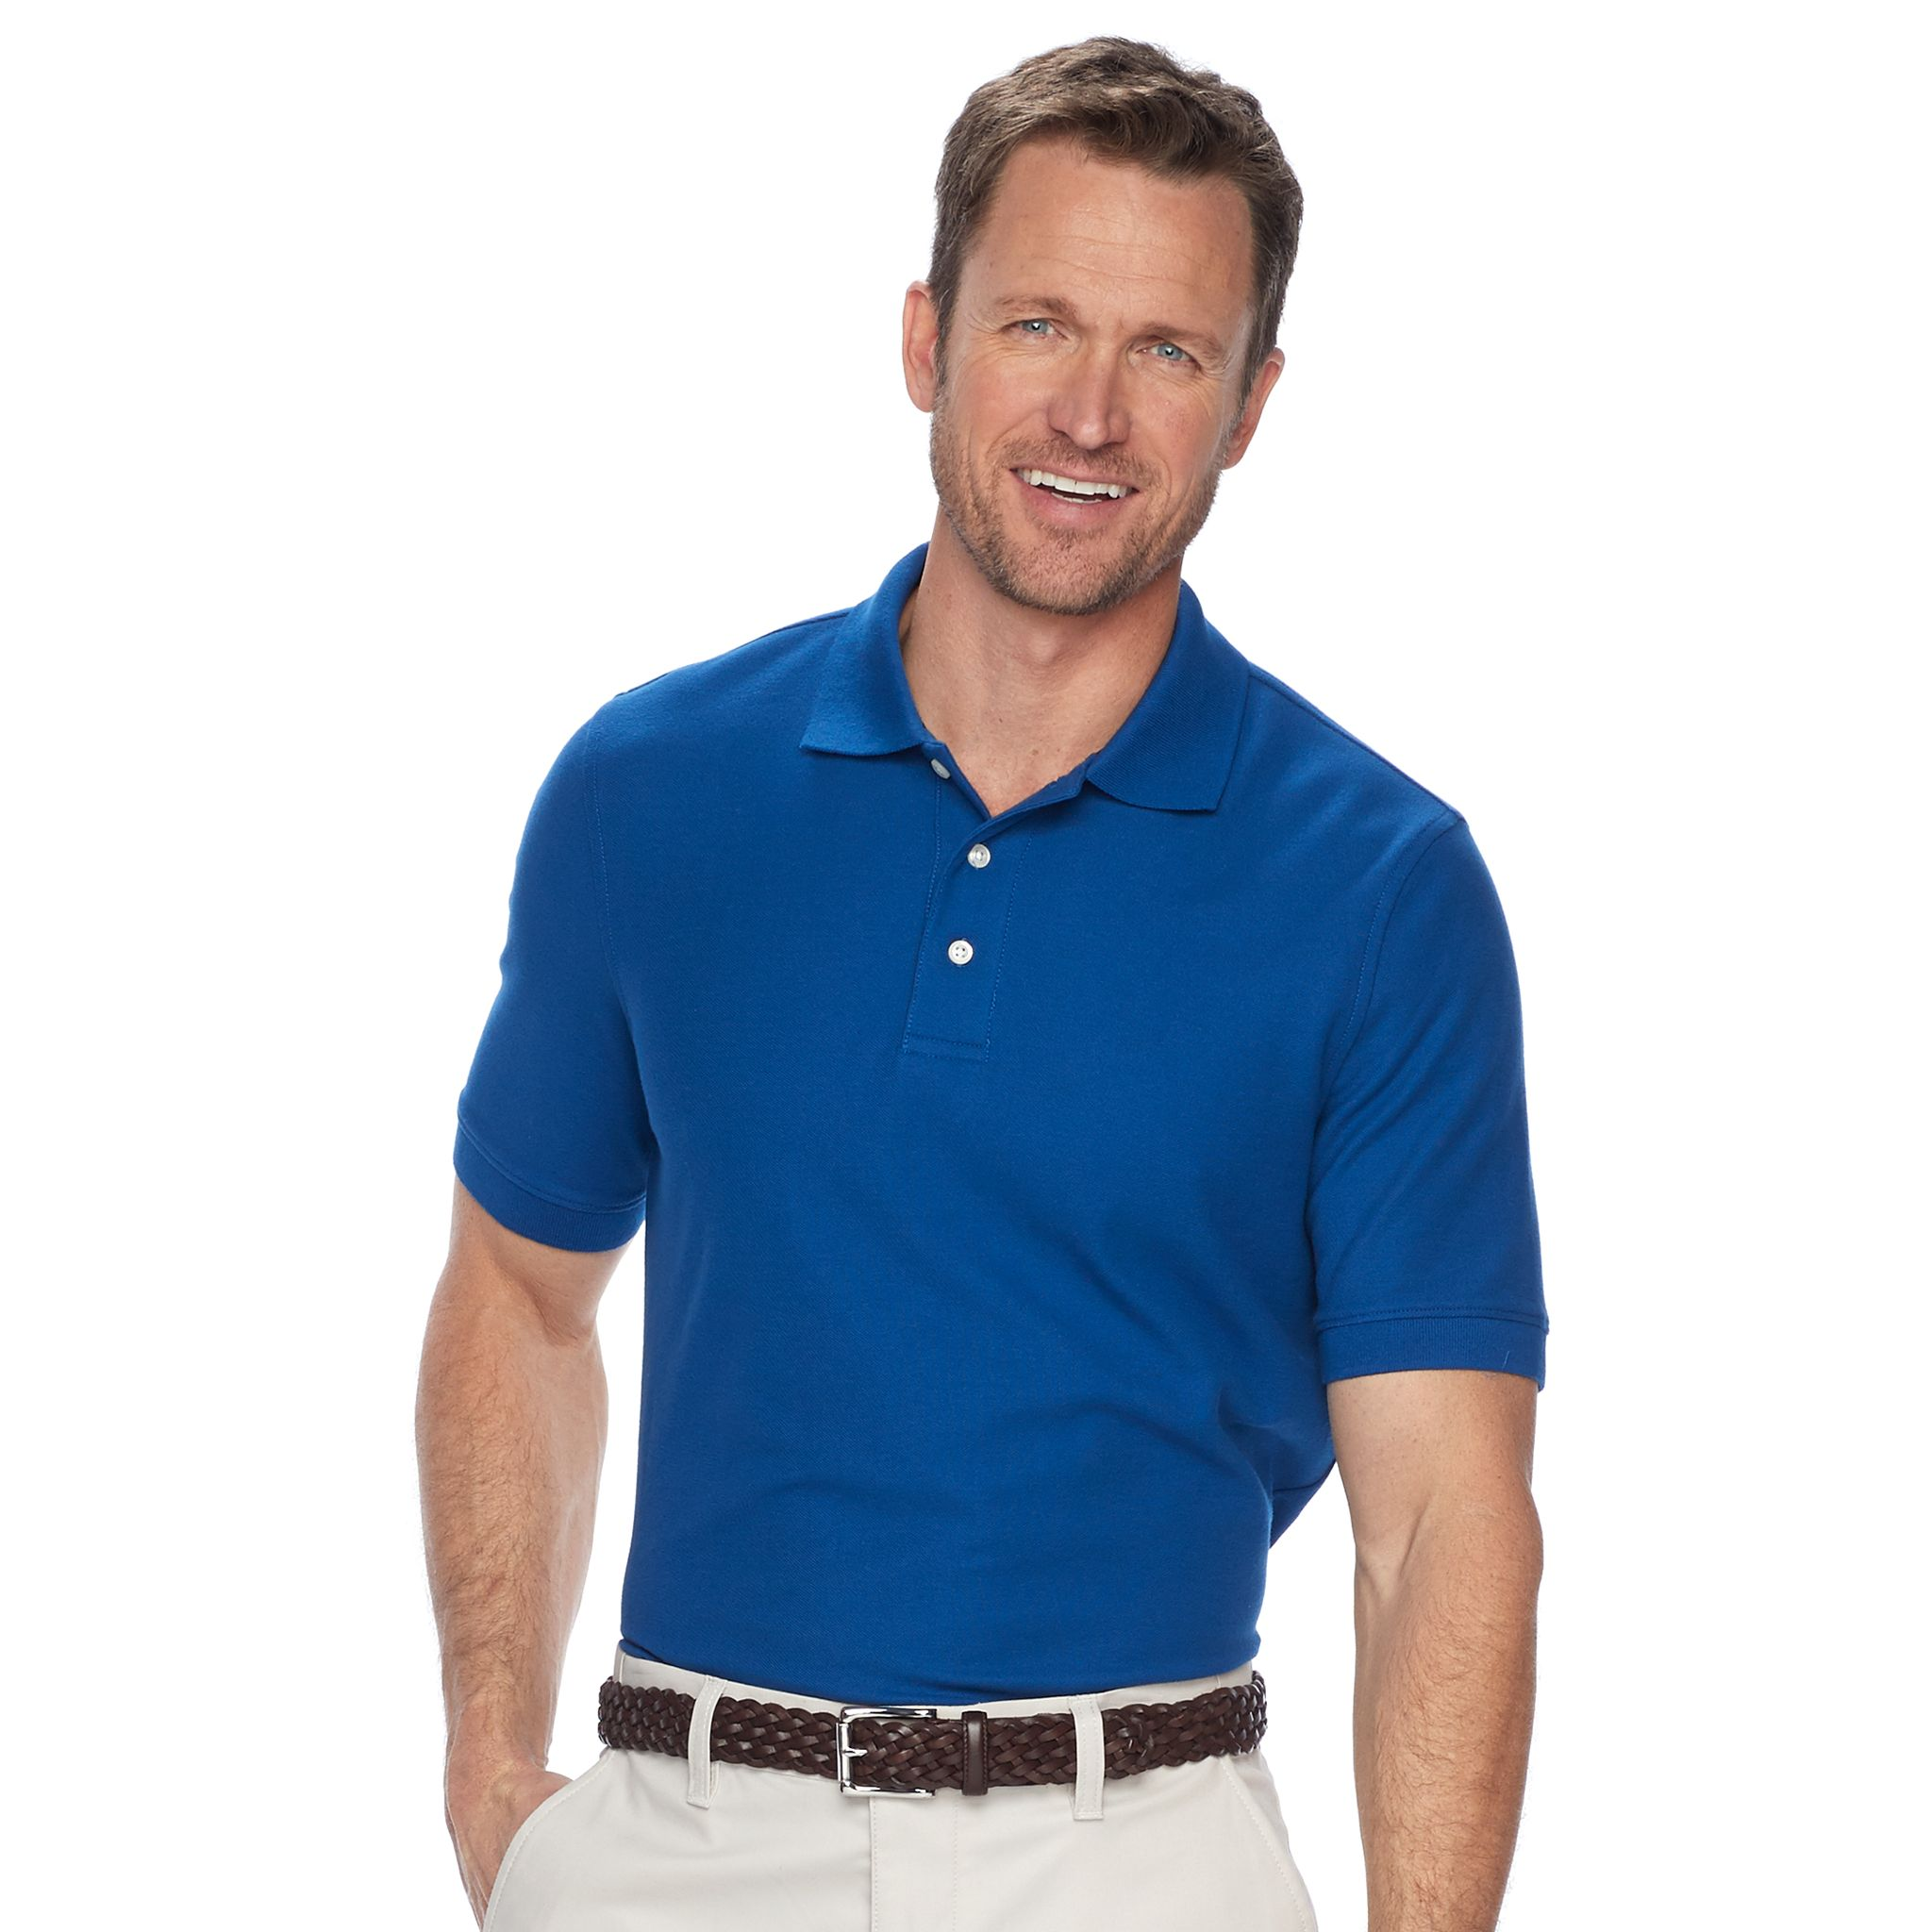 3 X Croft & Barrow Mens Easy-Care Pique Polo in Regular and Slim Fit